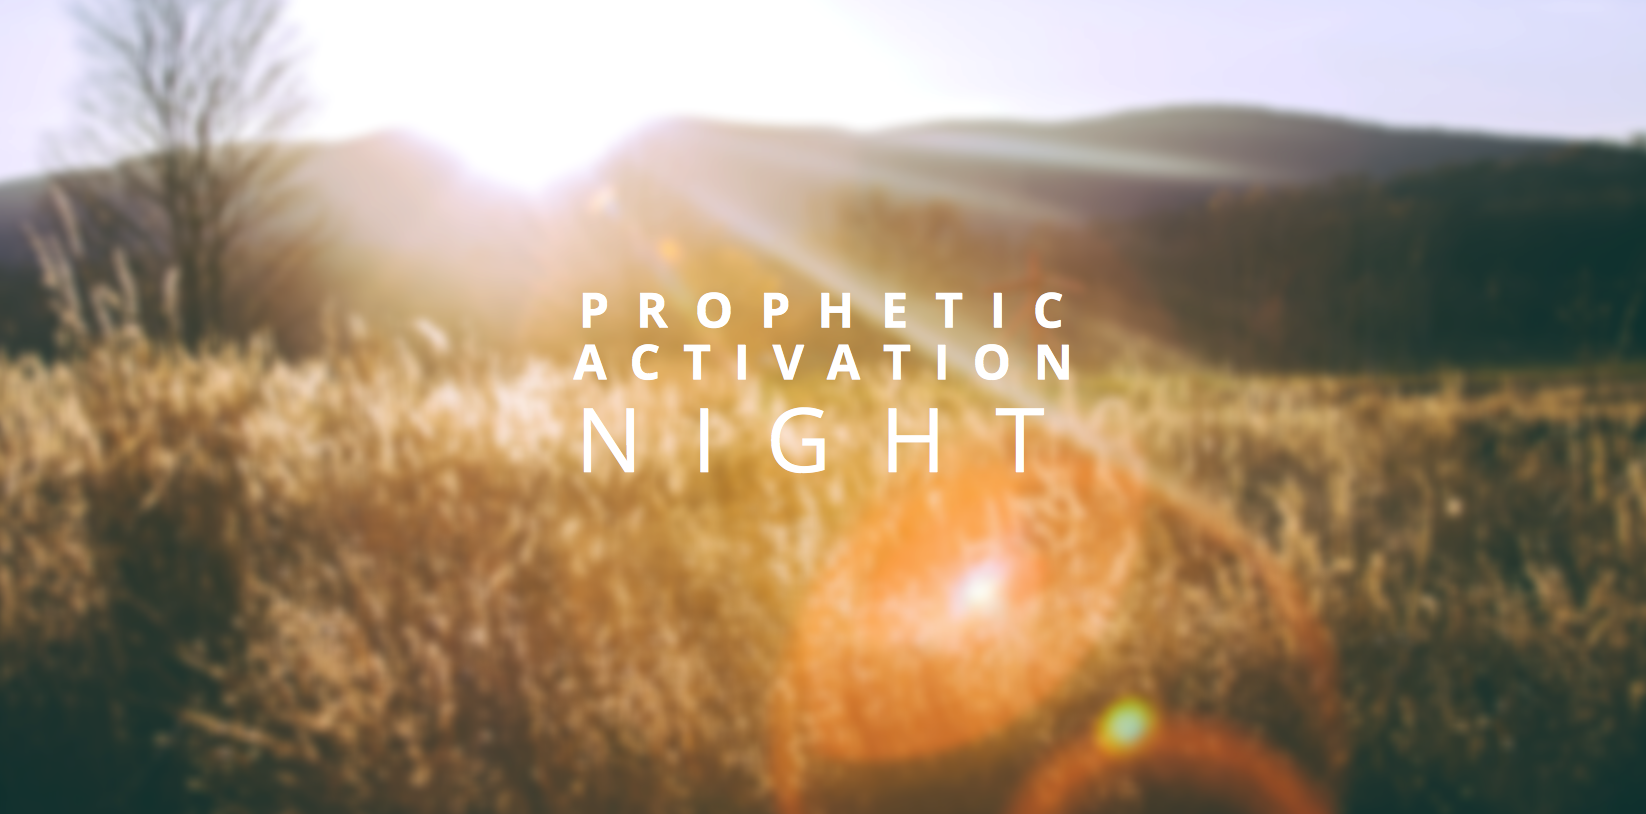 PROPHETIC ACTIVATION NIGHT